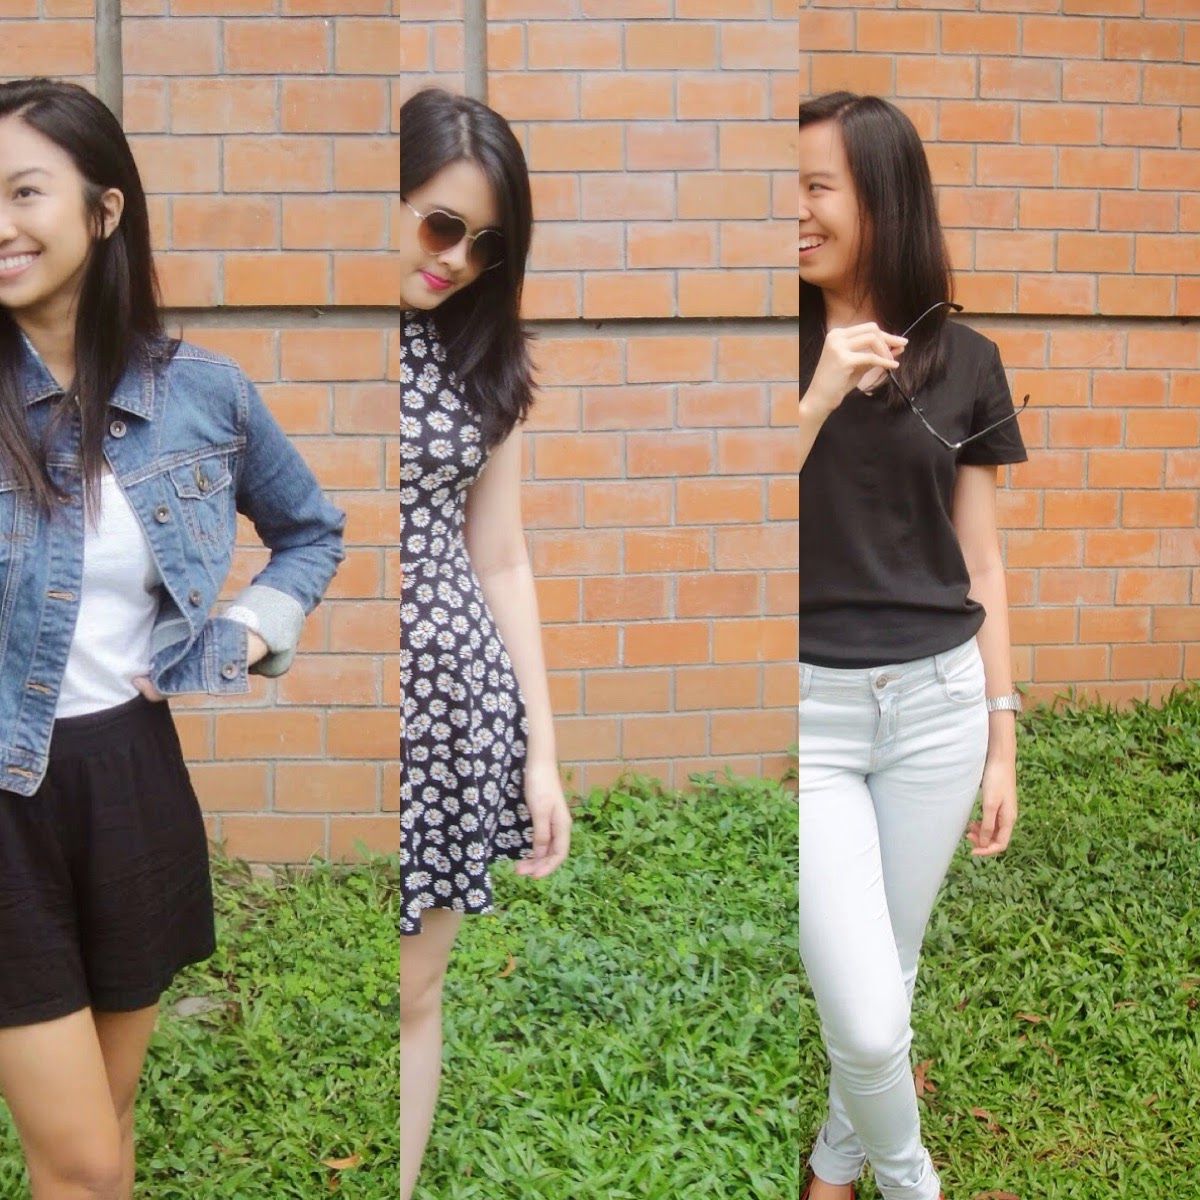 Fashion: 3 Ways to Wear Black on a Casual Day